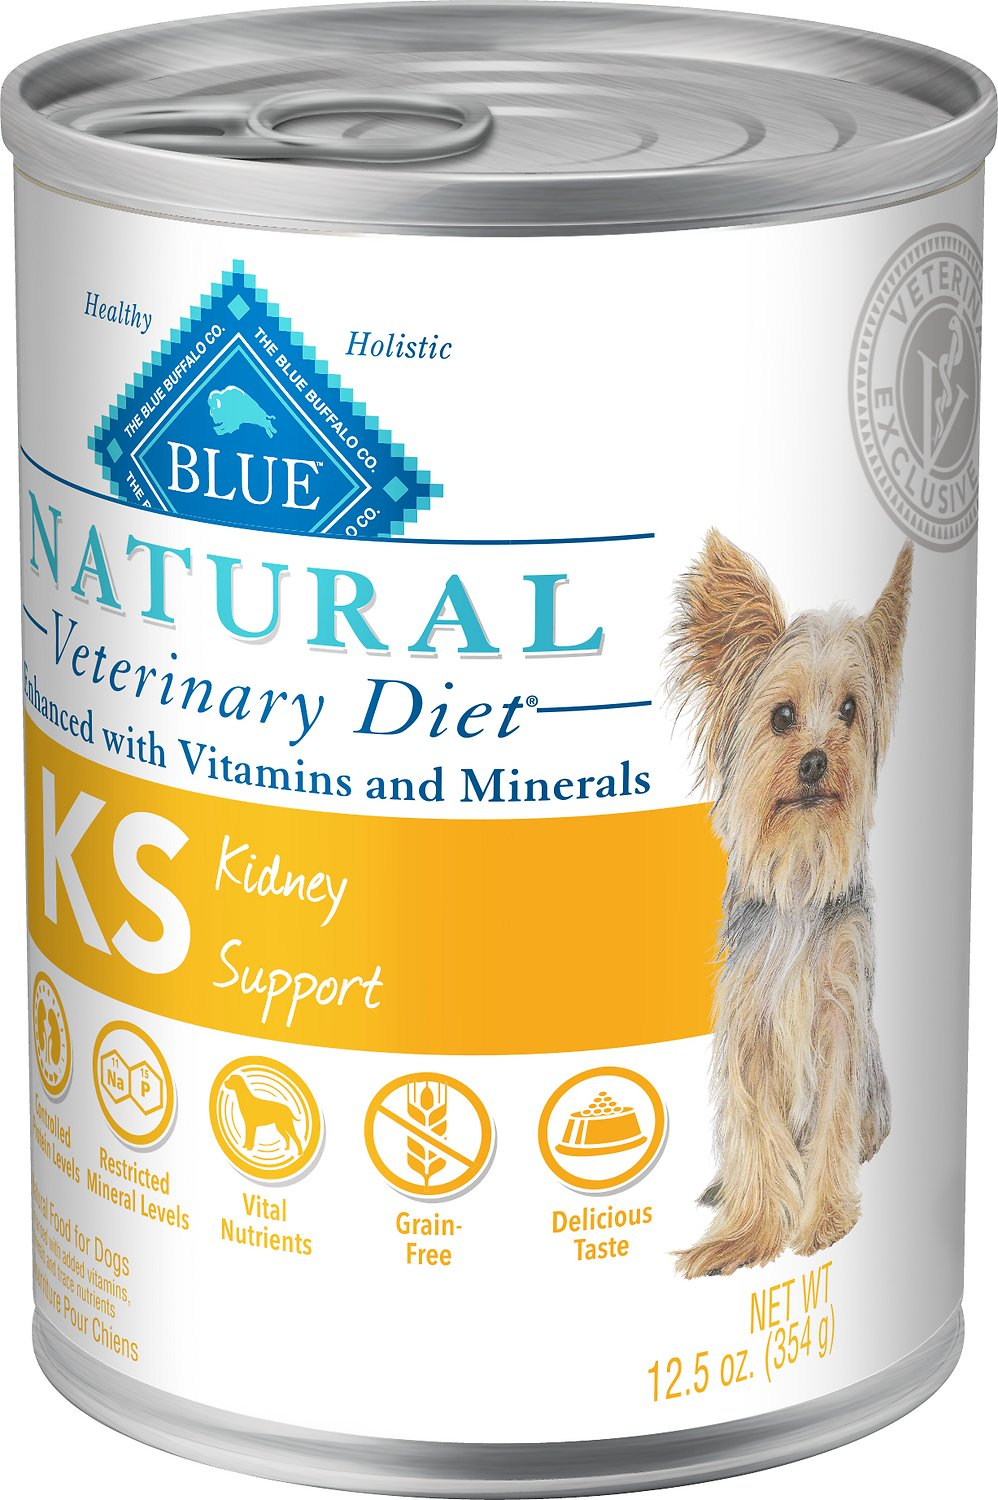 Blue Buffalo Natural Veterinary Diet KS Kidney Support Grain-Free Canned Dog Food, 12.5-oz, case of 12